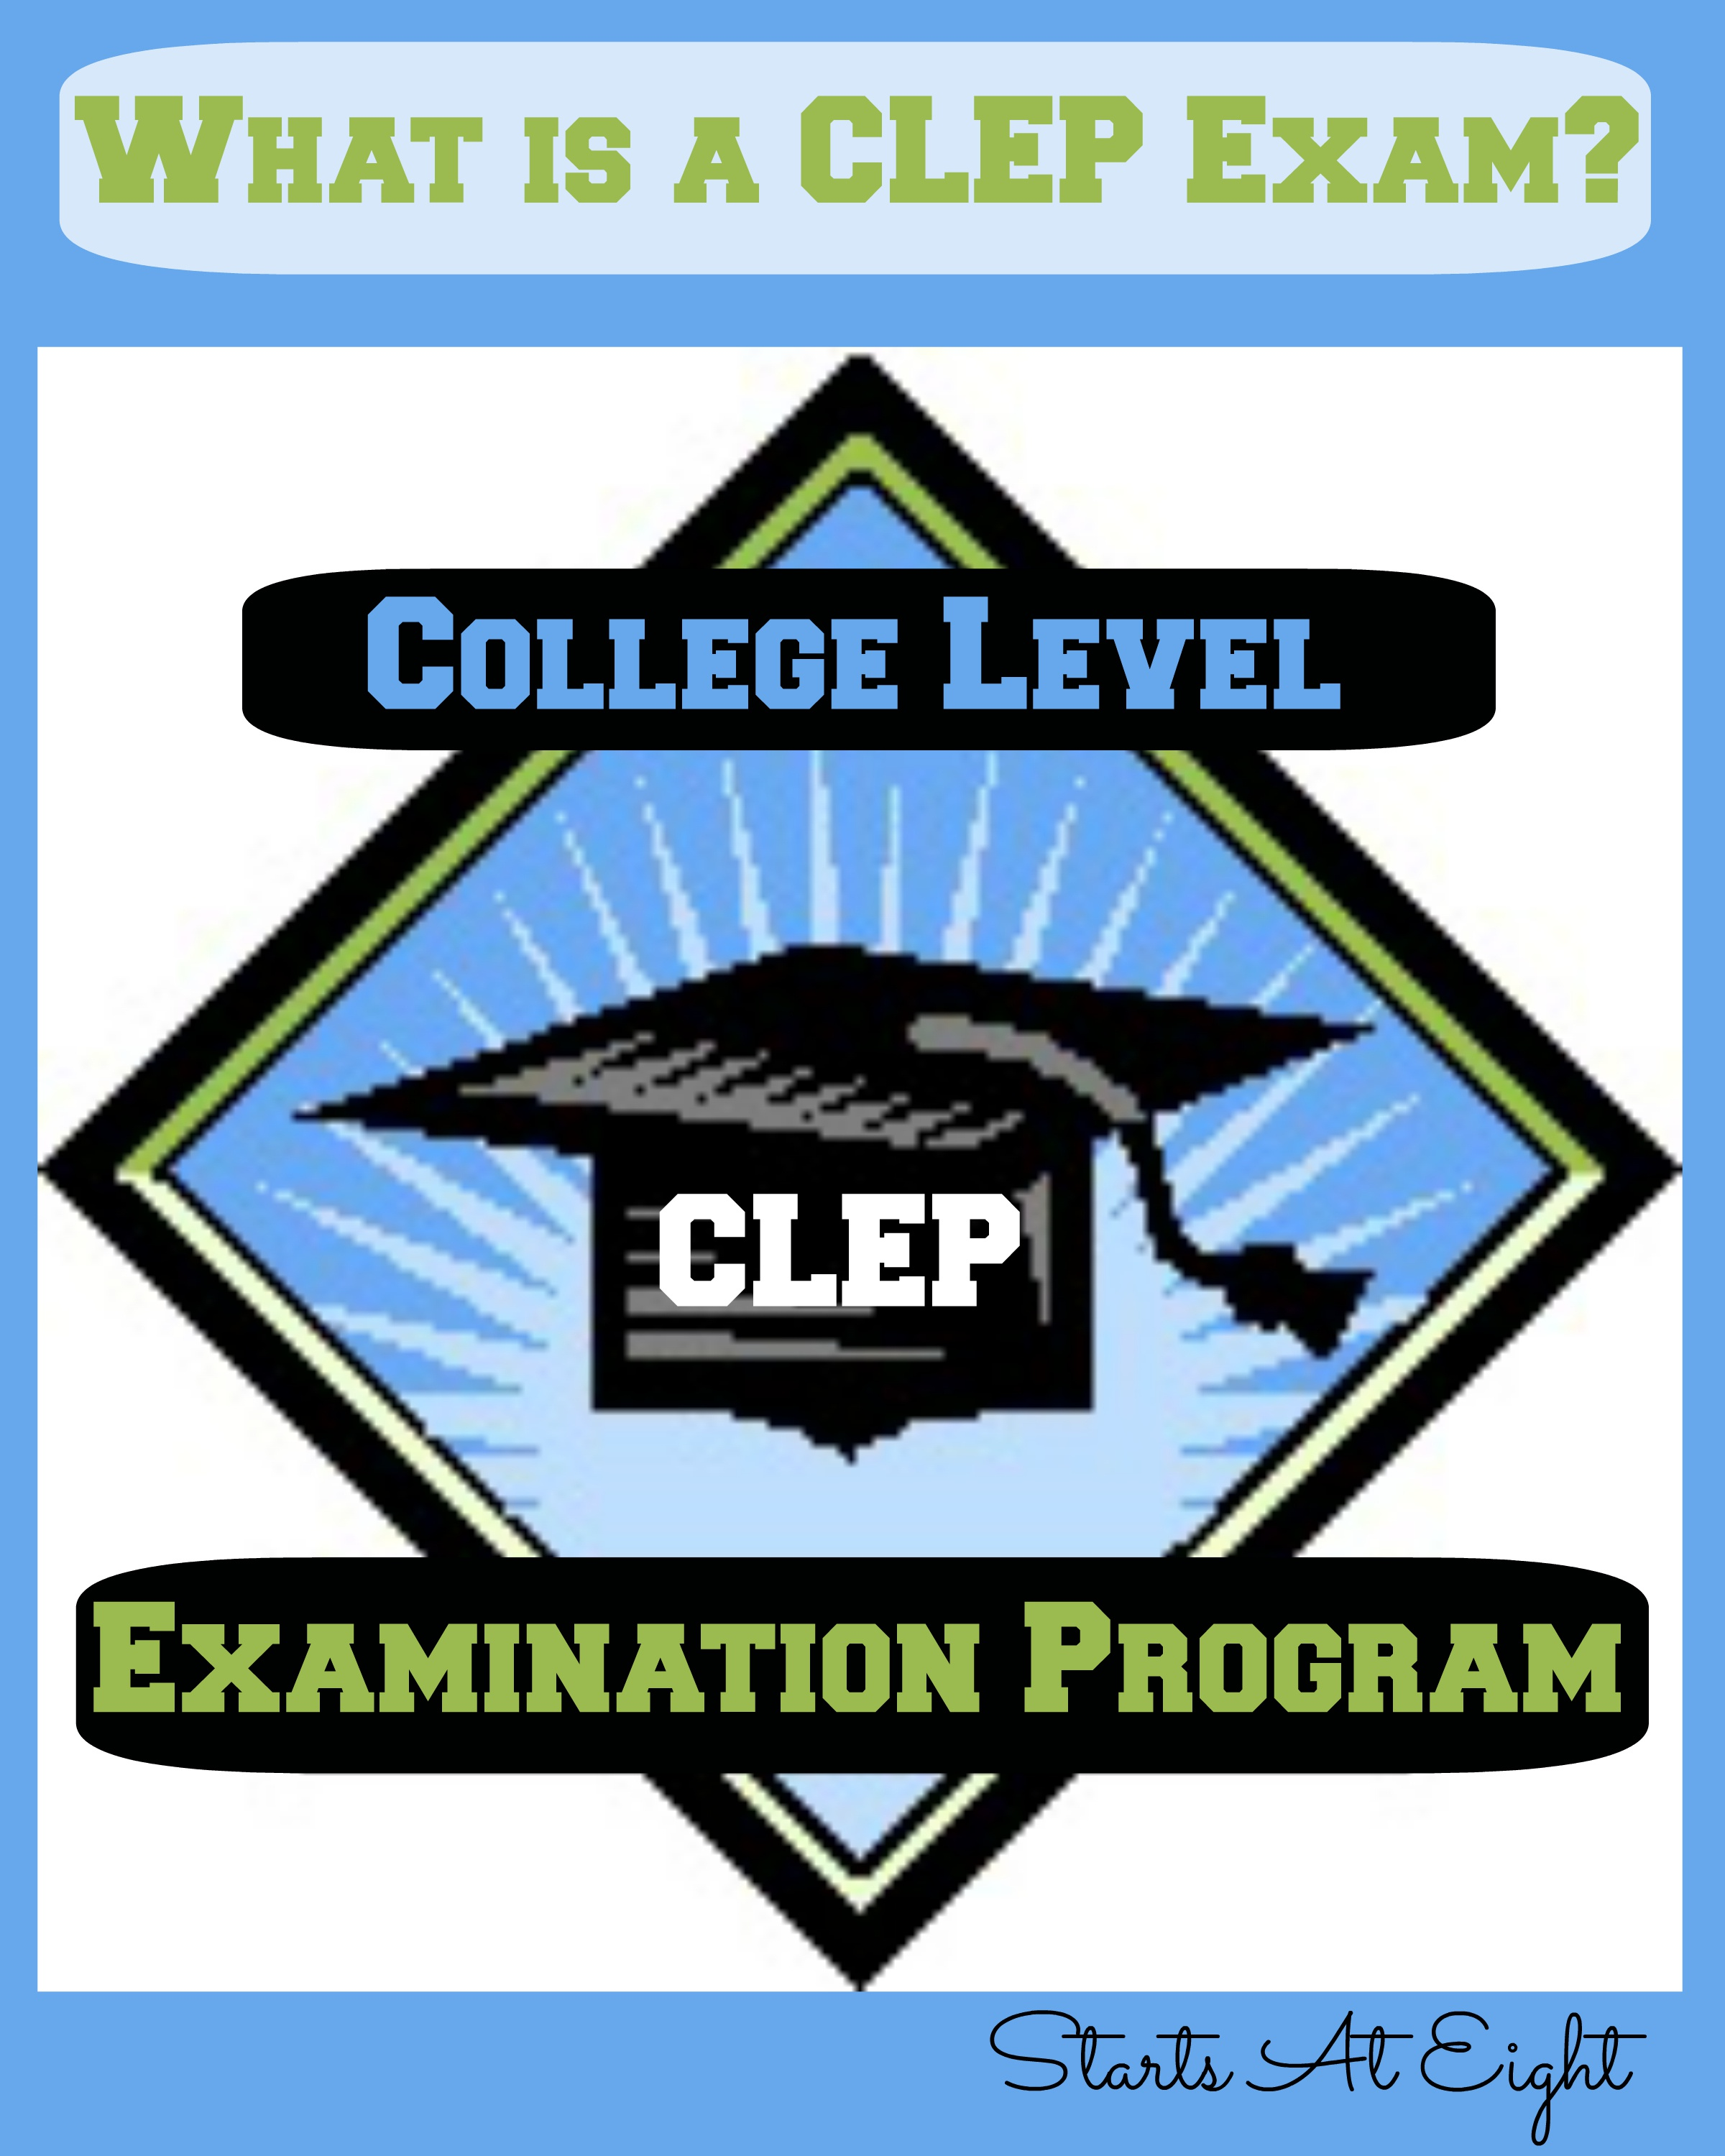 What is a CLEP Exam?